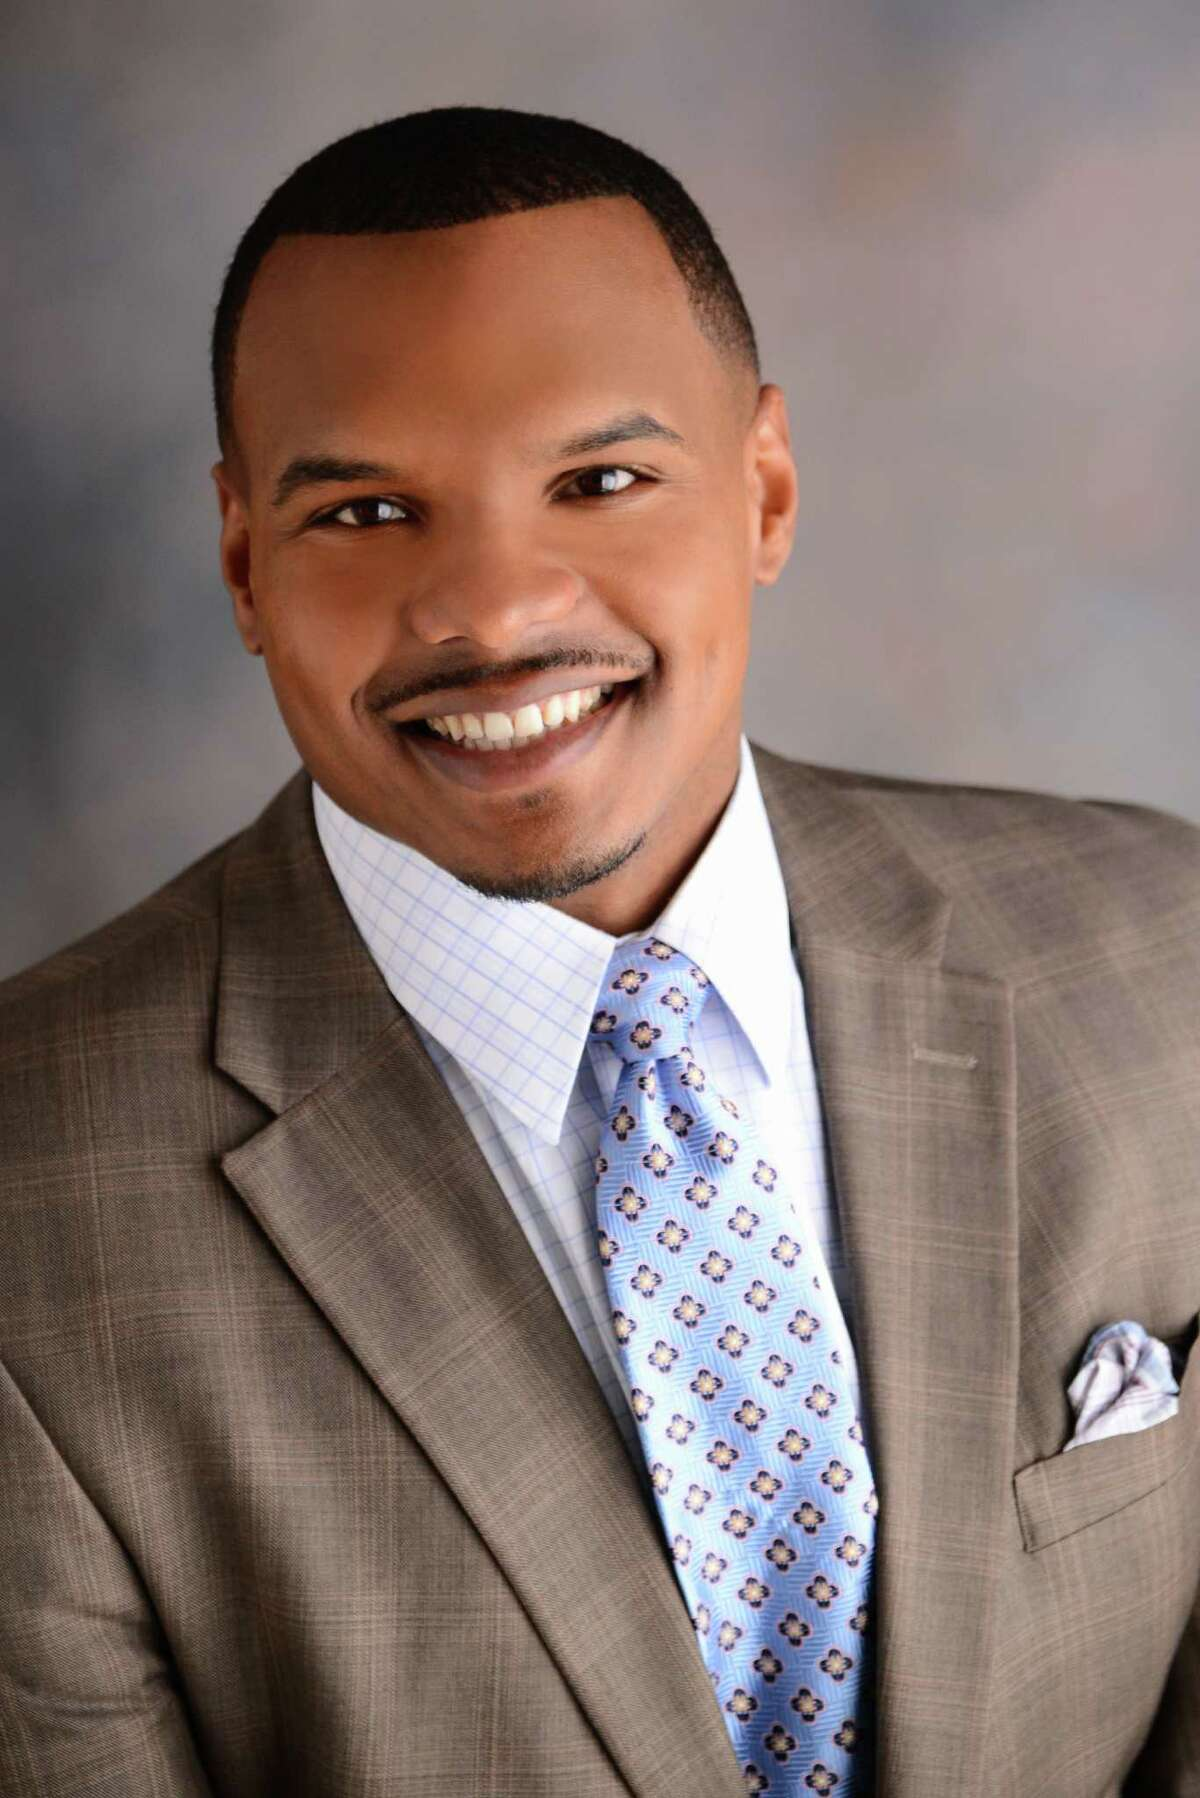 Chester Pitts, television host and sports analyst, businessman and original Houston Texans football player